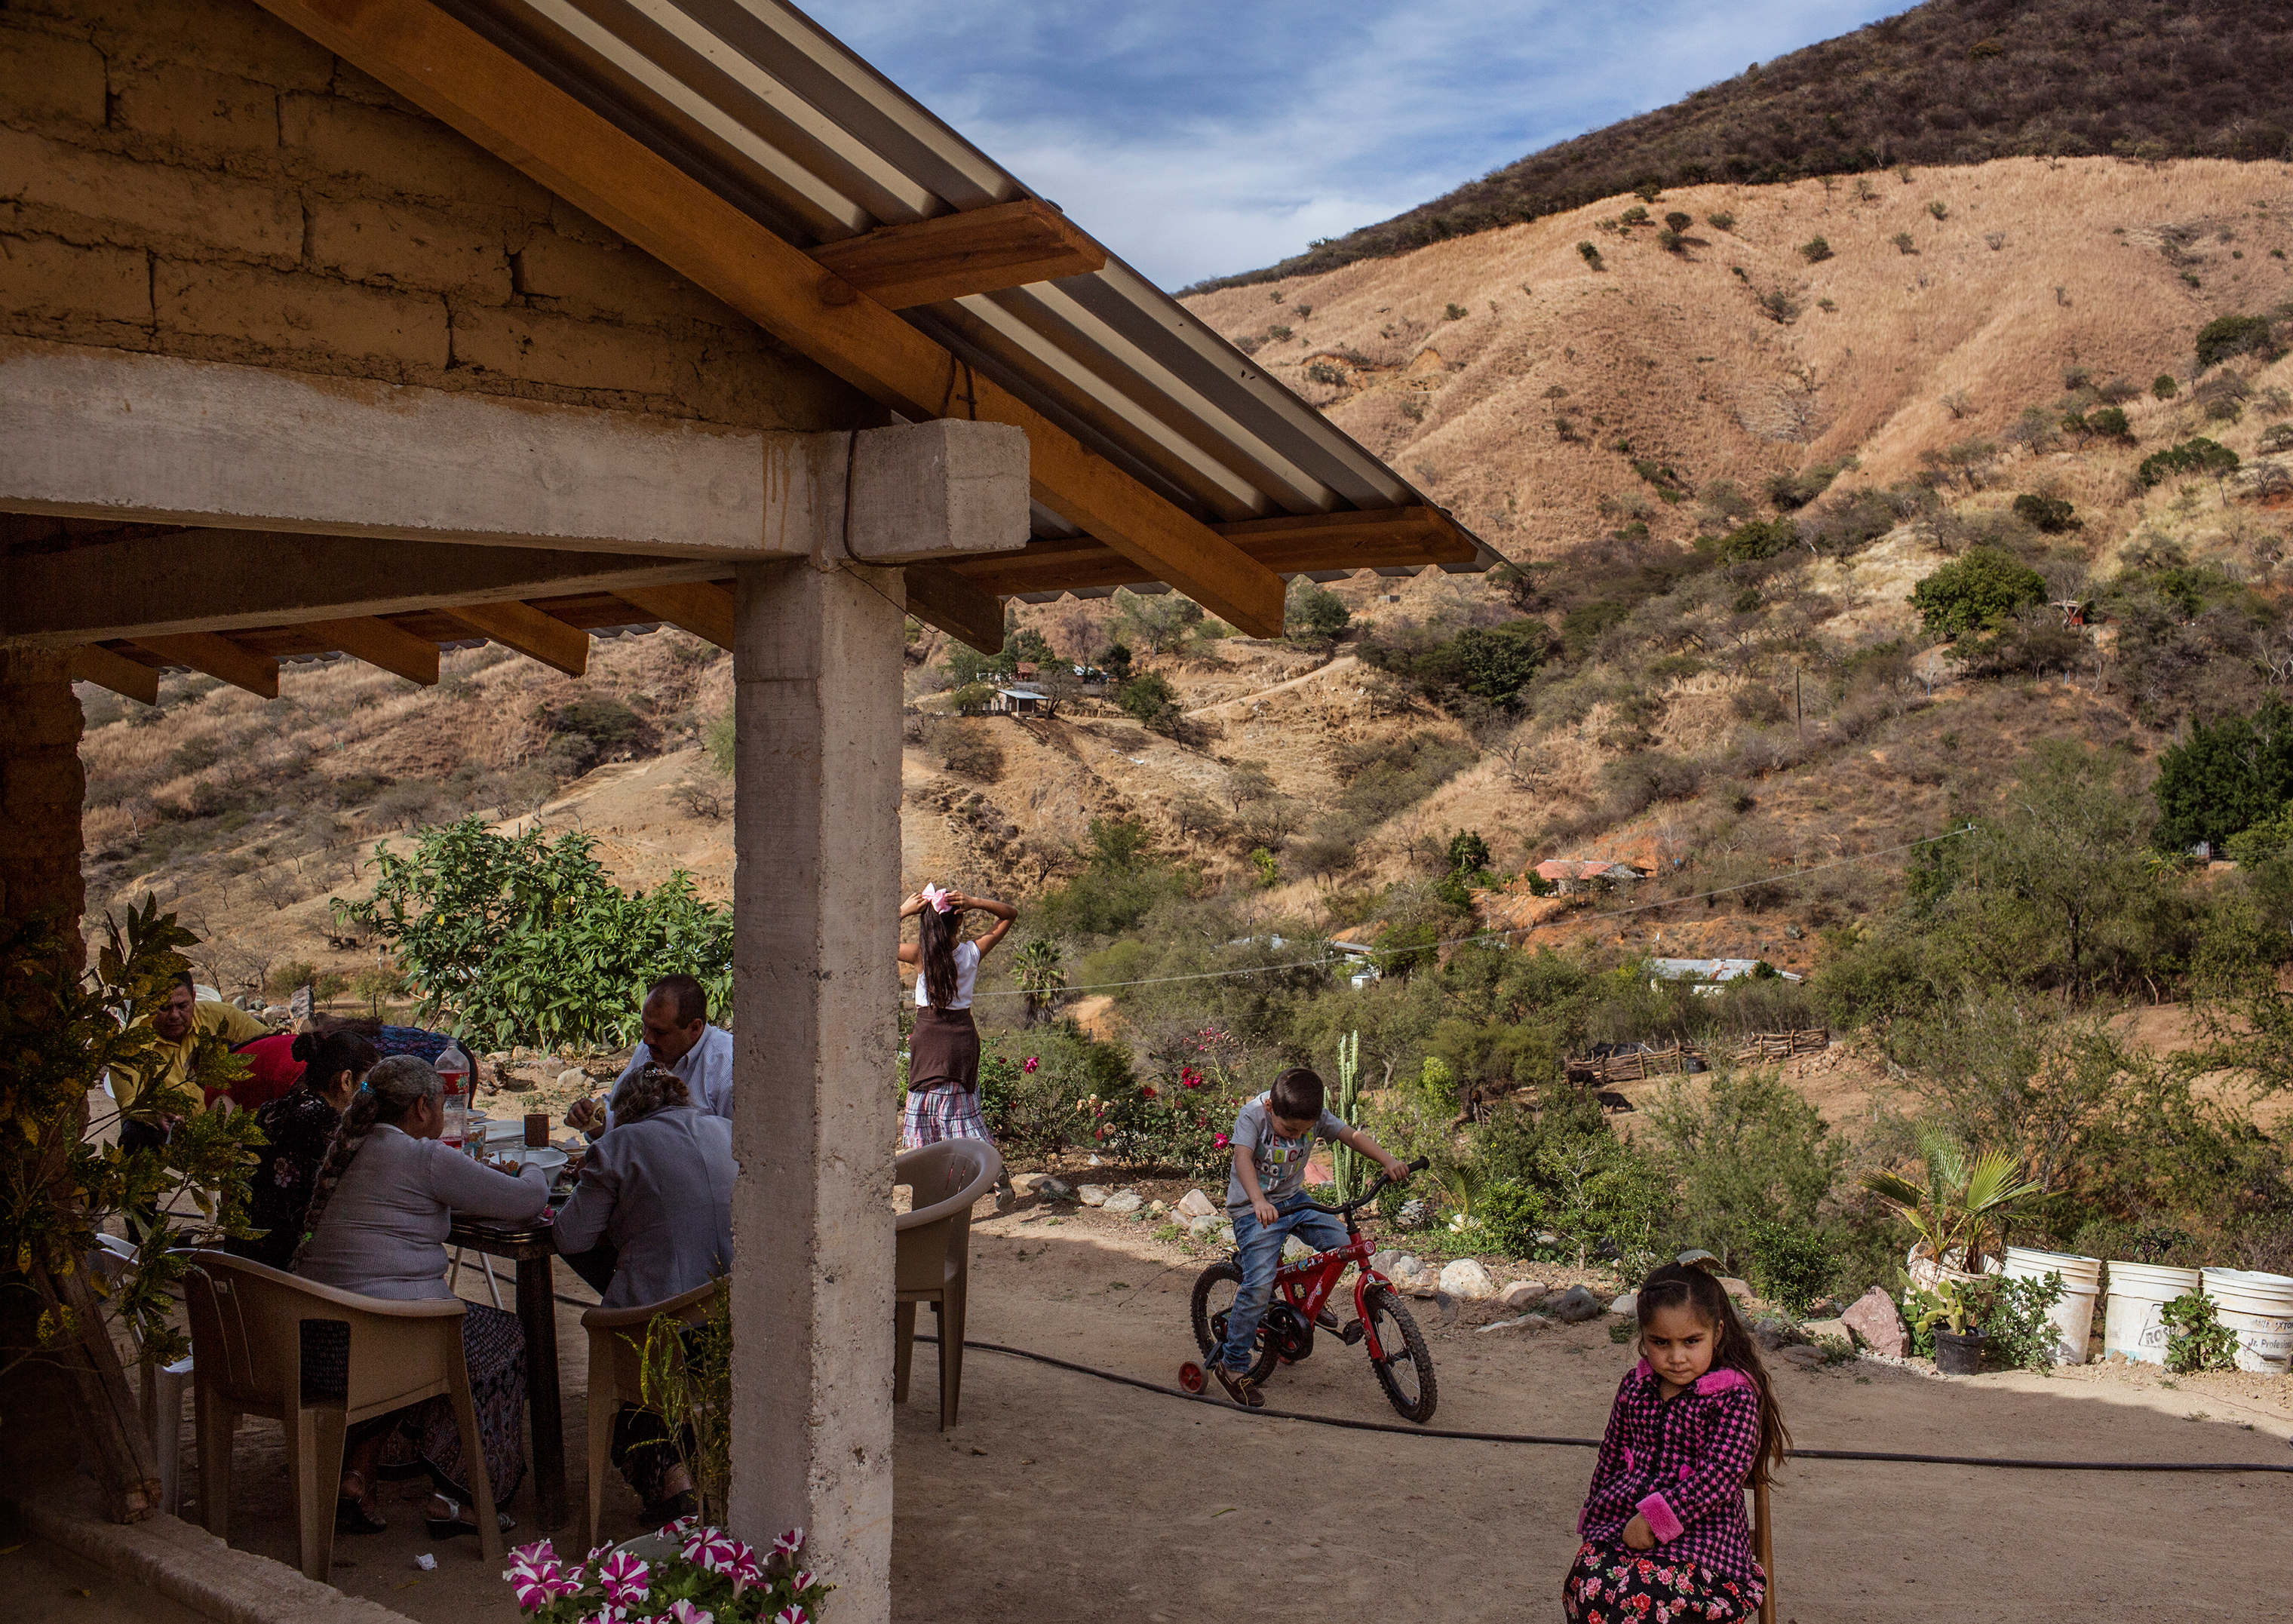 José, who calls Guzmán an uncle, hosts a barbecue with family and friends near Guzmán's mother's compound.